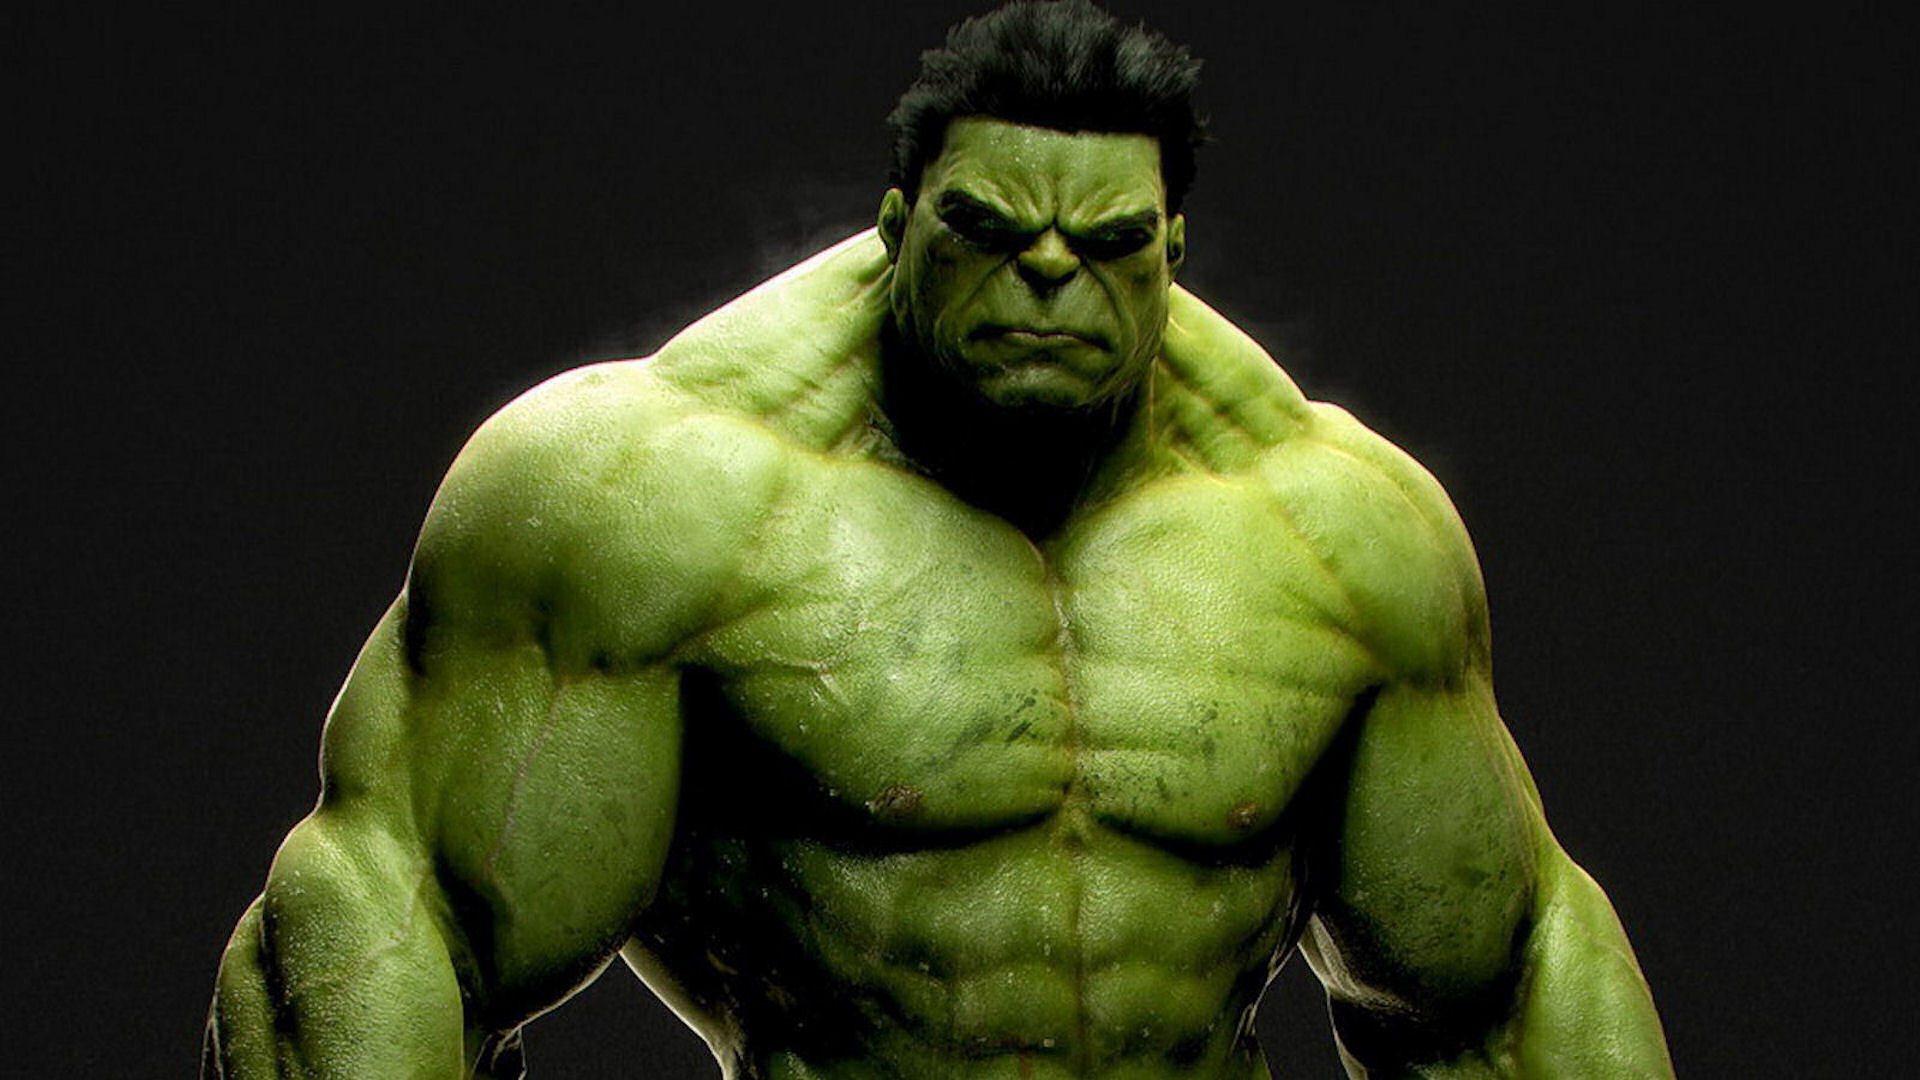 facts-about-the-Hulk-you-may-not-have-known-that-are-awesome-wallpaper-wpc5801562